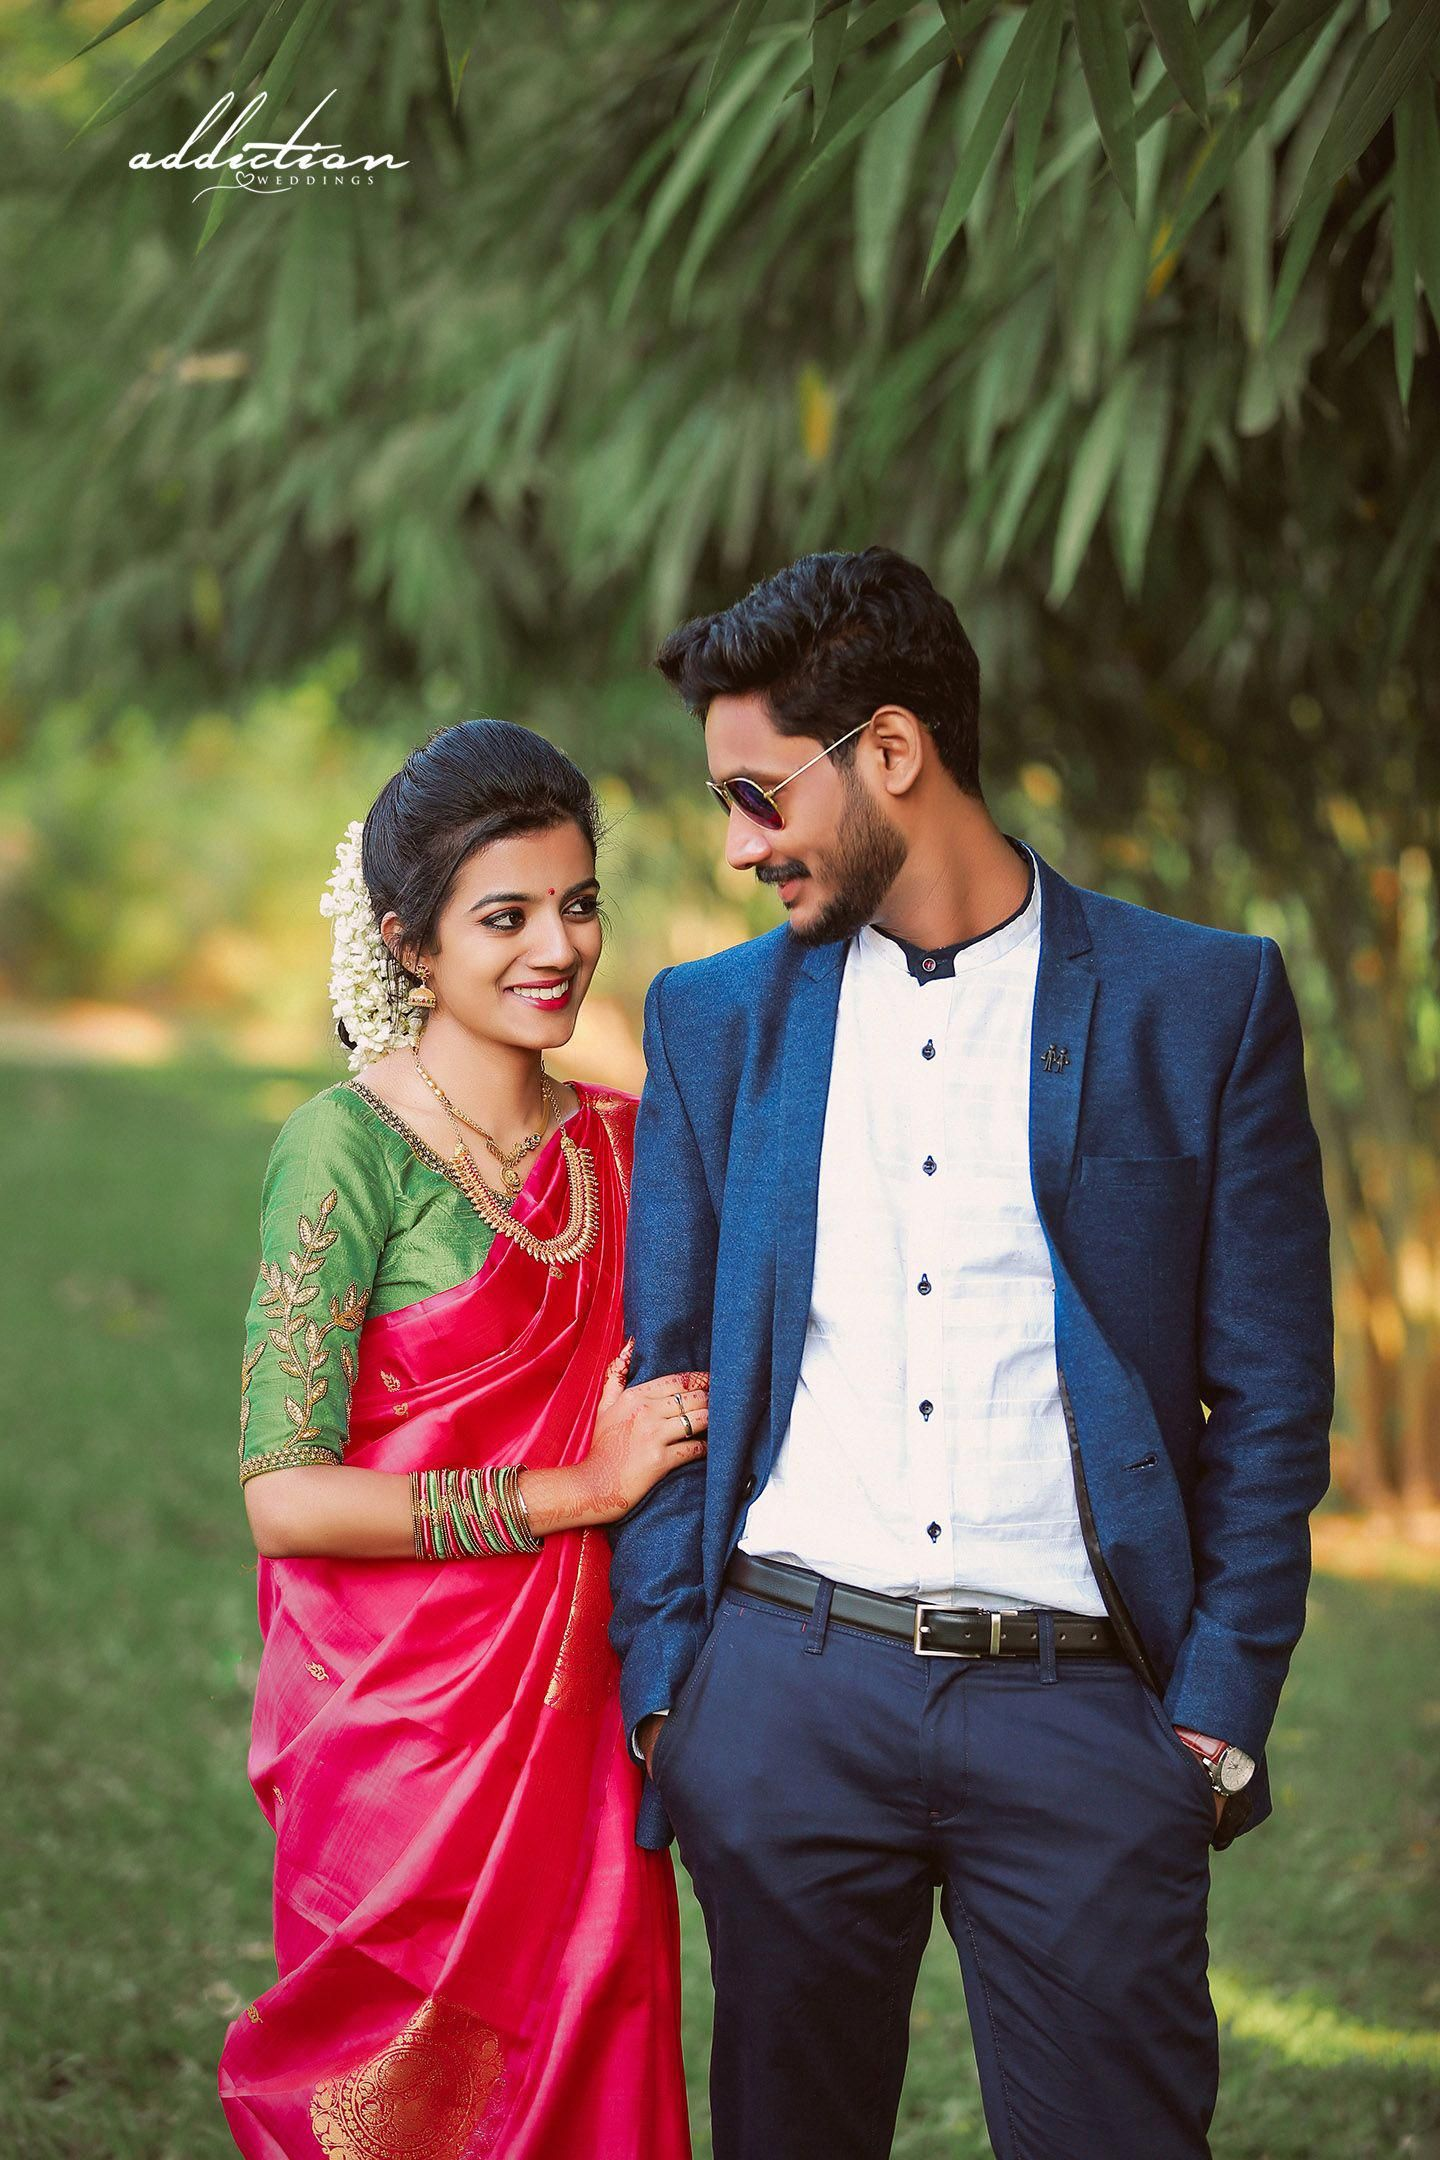 South Indian Wedding Cute Smile Traditionalbride Hinduwedding Indian Wedding Photography Indian Wedding Photography Poses Indian Wedding Photography Couples